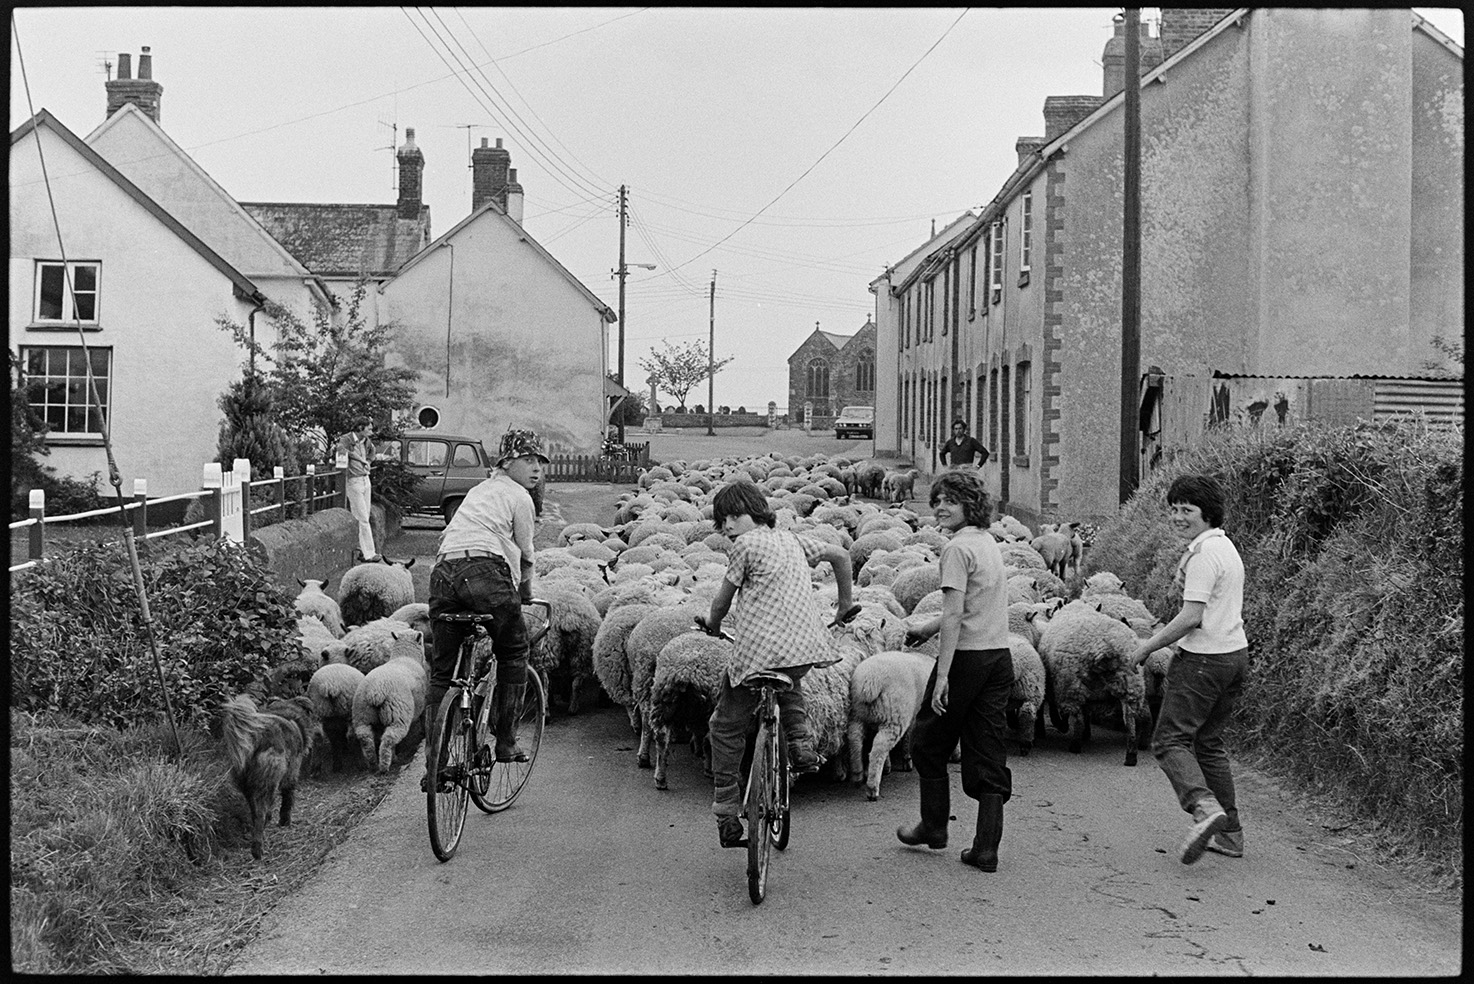 Teenagers helping farmer move sheep through village, Ashreigney, Densham, April 1978.